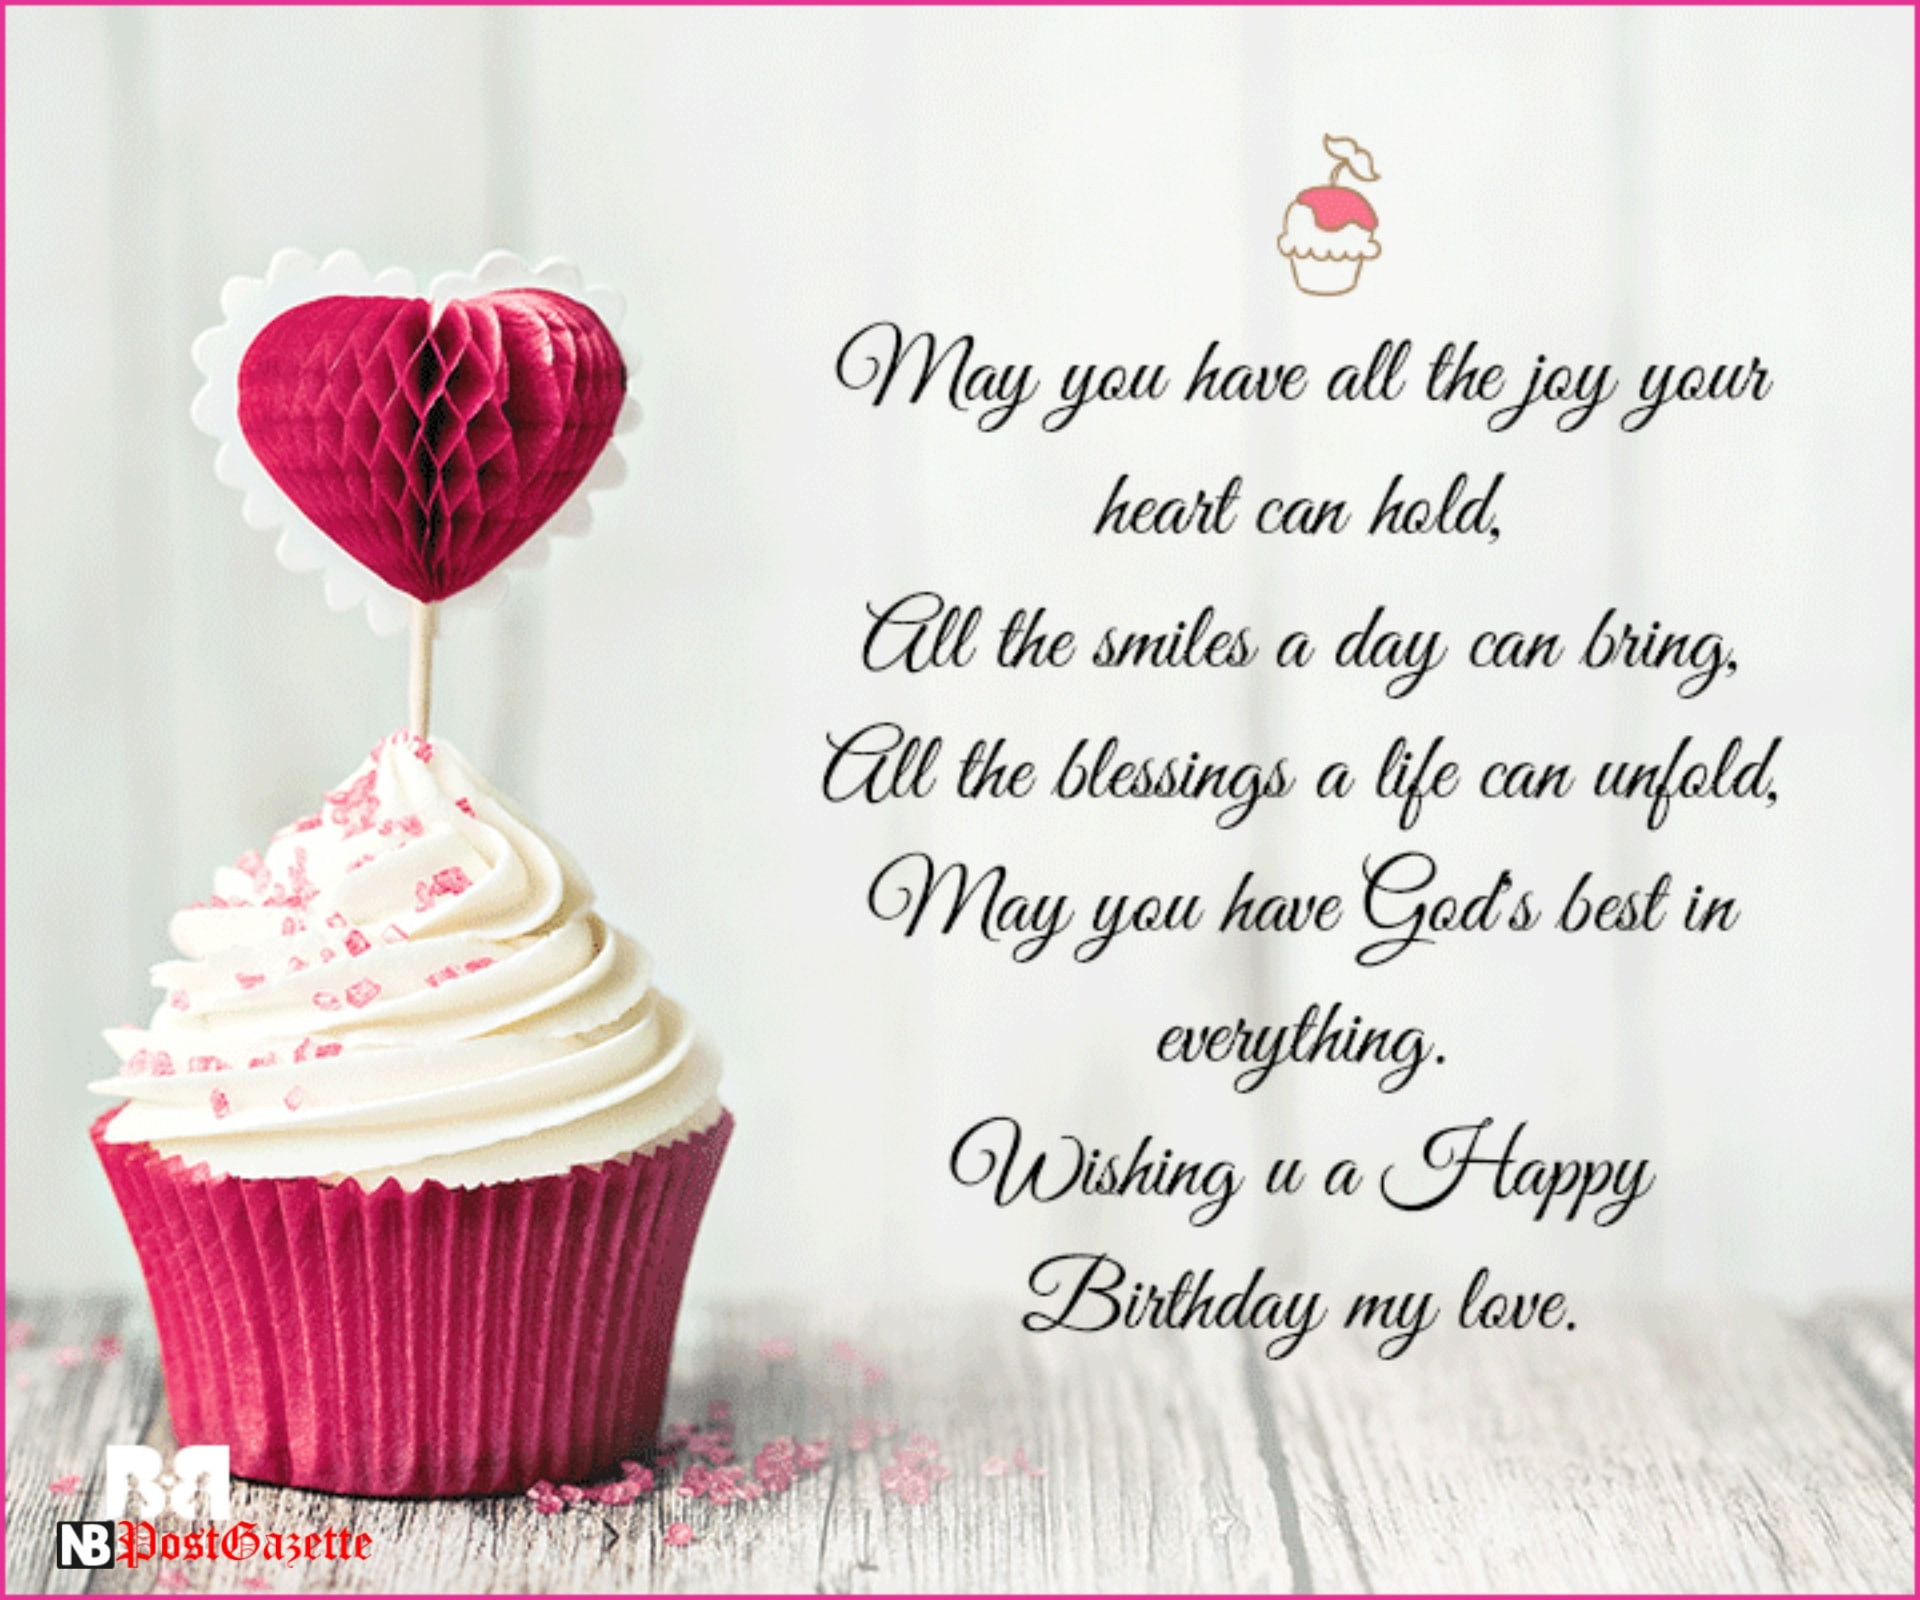 Birthday Wishes Messages  Top Best Happy Birthday Wishes SMS Quotes & Text Messages